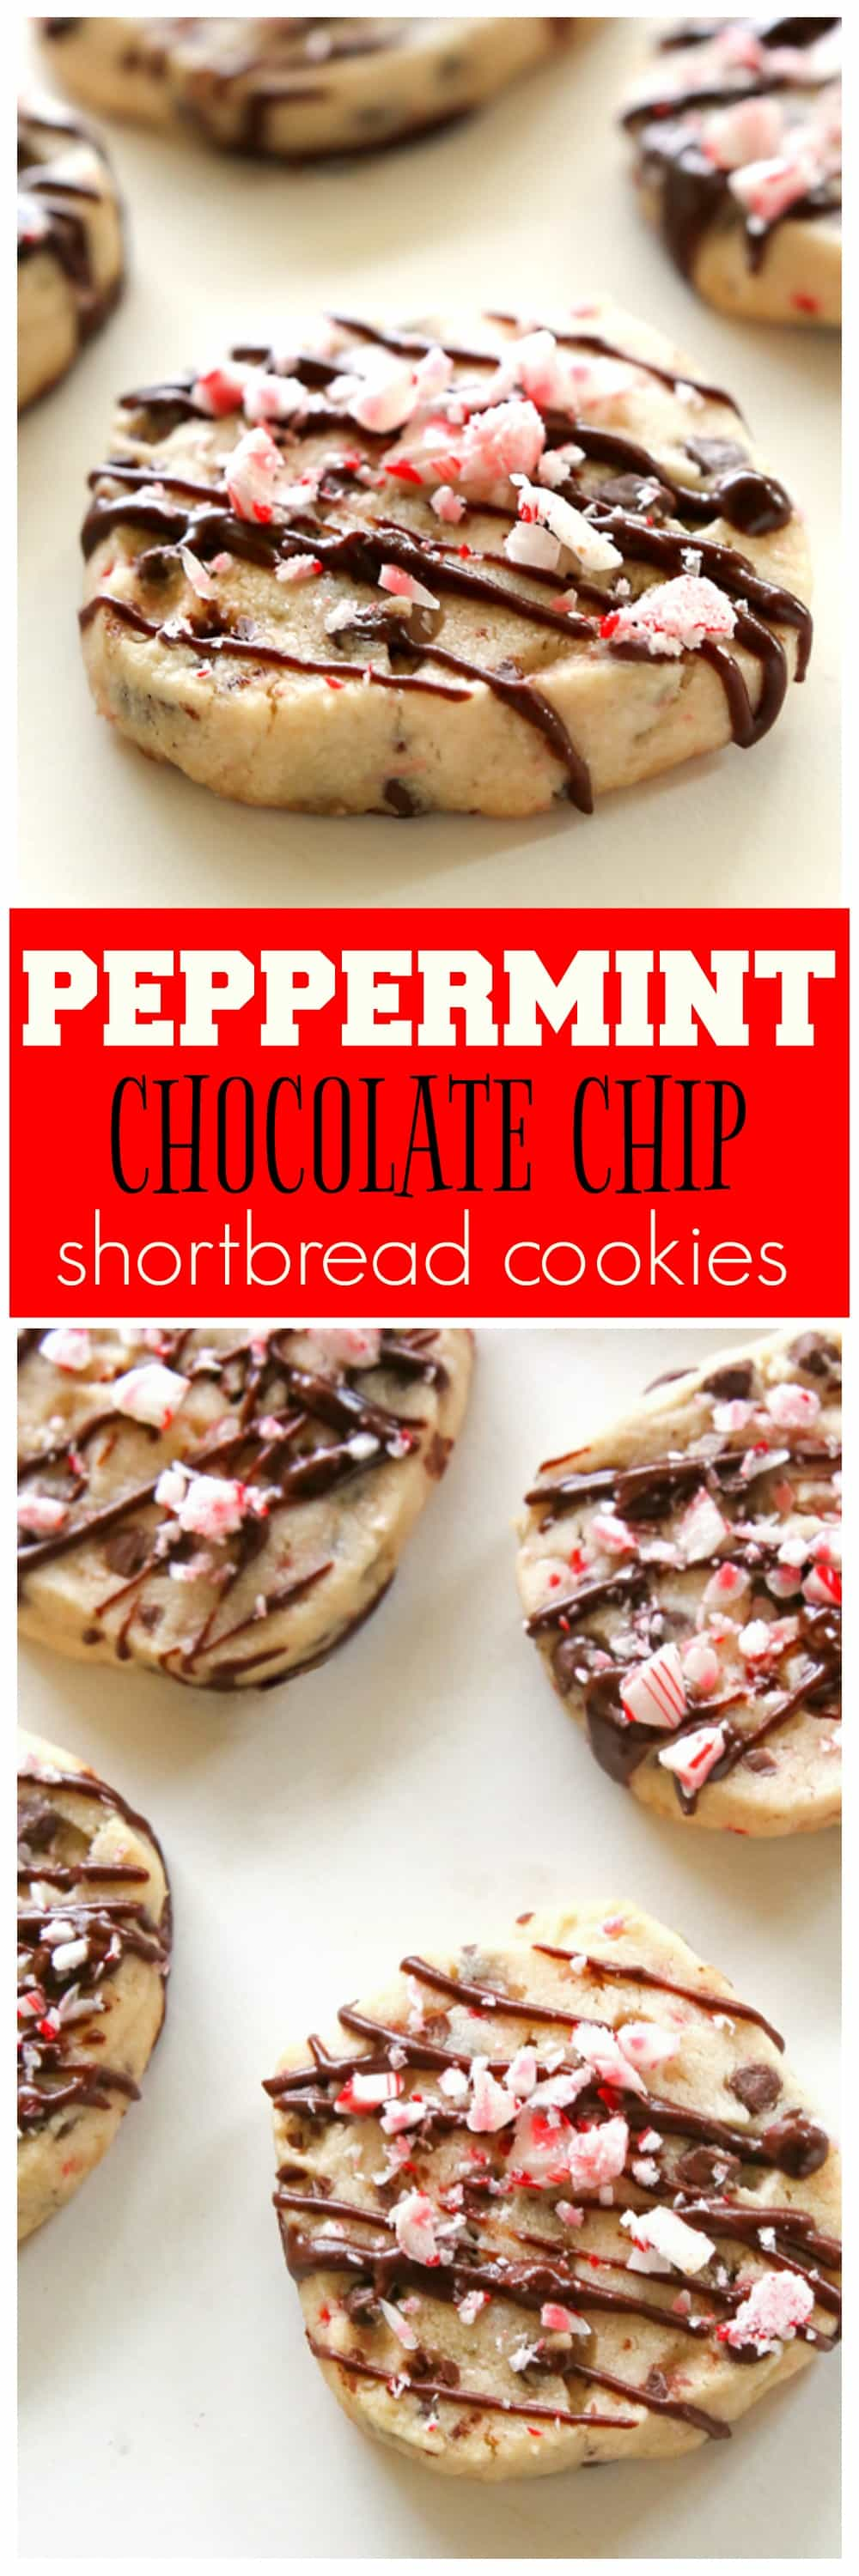 Peppermint Chocolate Chip Shortbread Cookies - The Girl Who Ate ...